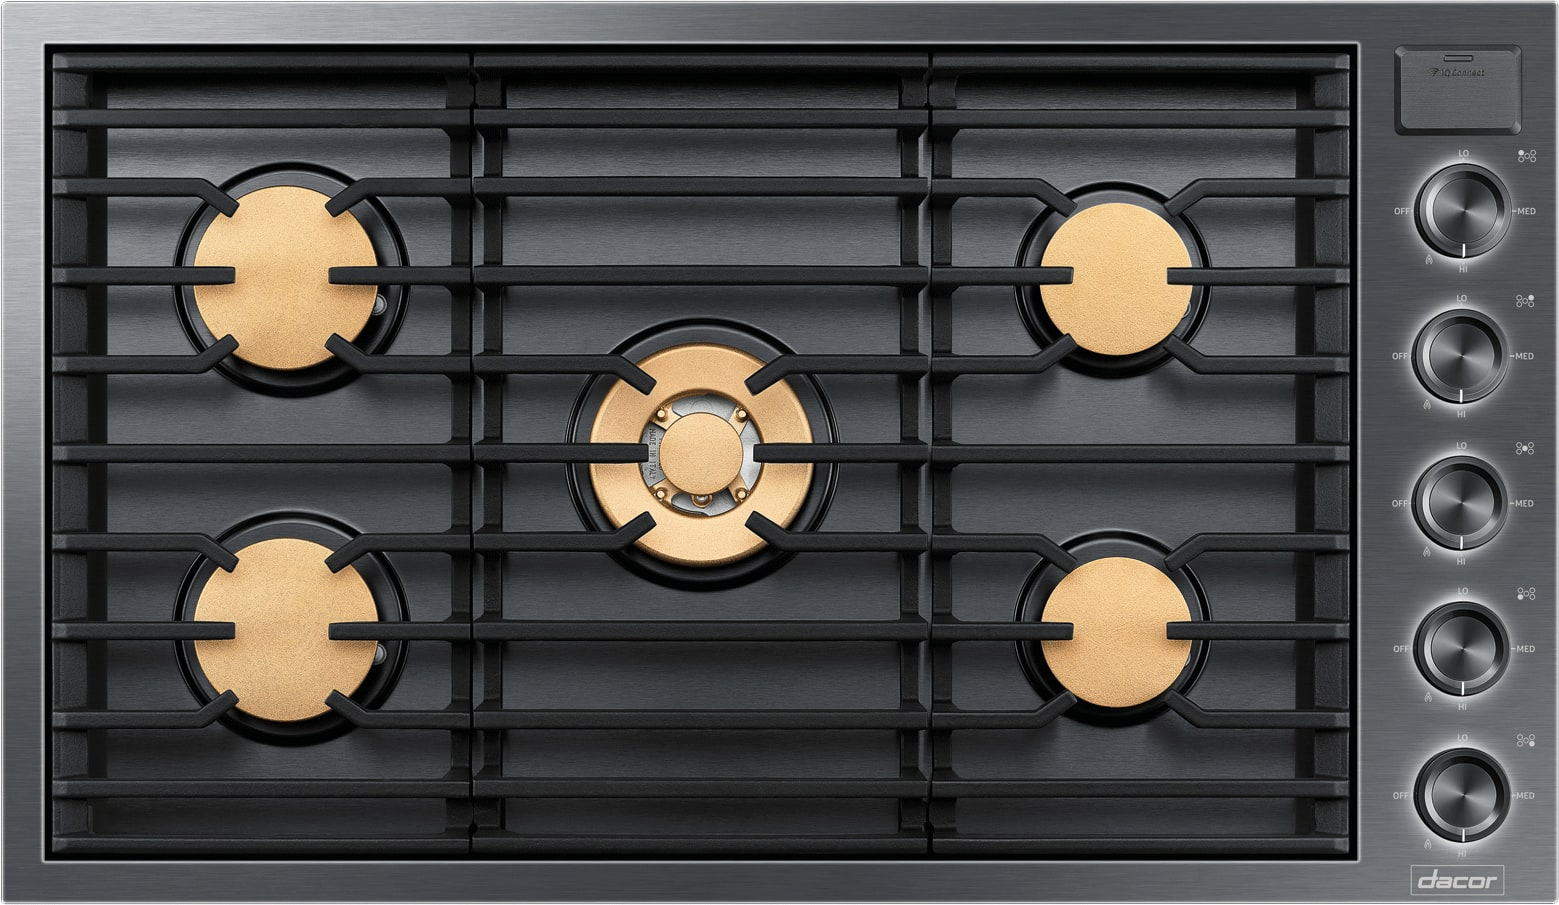 Dacor Dtg36m955fm 36 Inch Gas Cooktop With Iq Kitchen